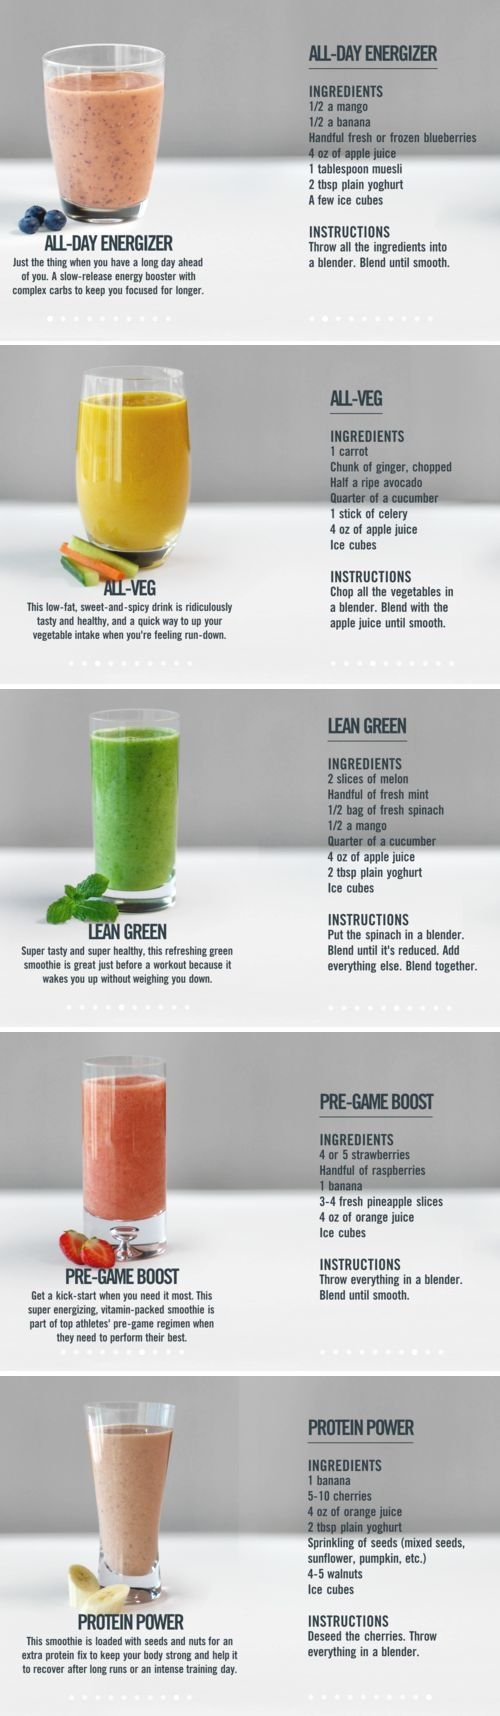 Sometimes all it takes is a little kick start in the morning to give your day a fresh start. With these delicious smoothie recipes, you'll have enough energy to be running around from work to dress fittings to meeting your vendors. - via iHerb #weightlossmotivation